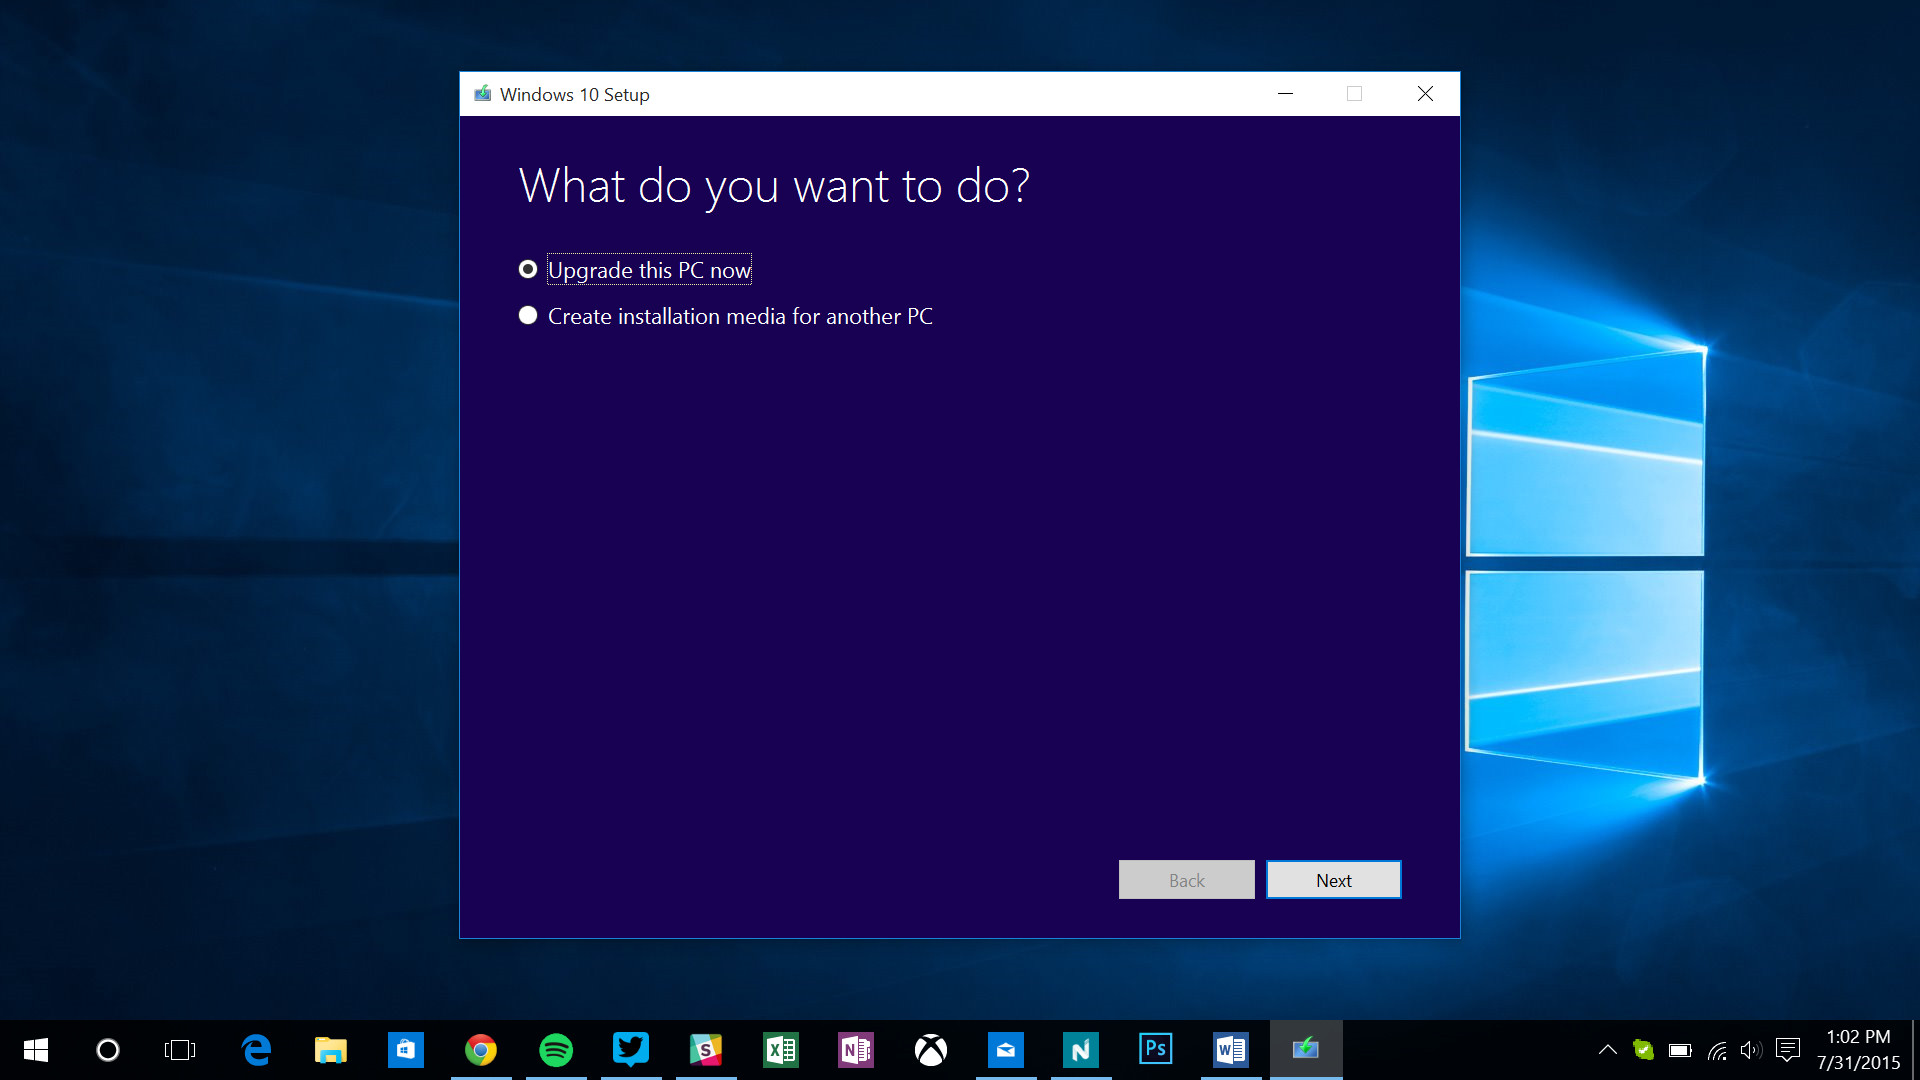 Windows 10 upgrade prompt